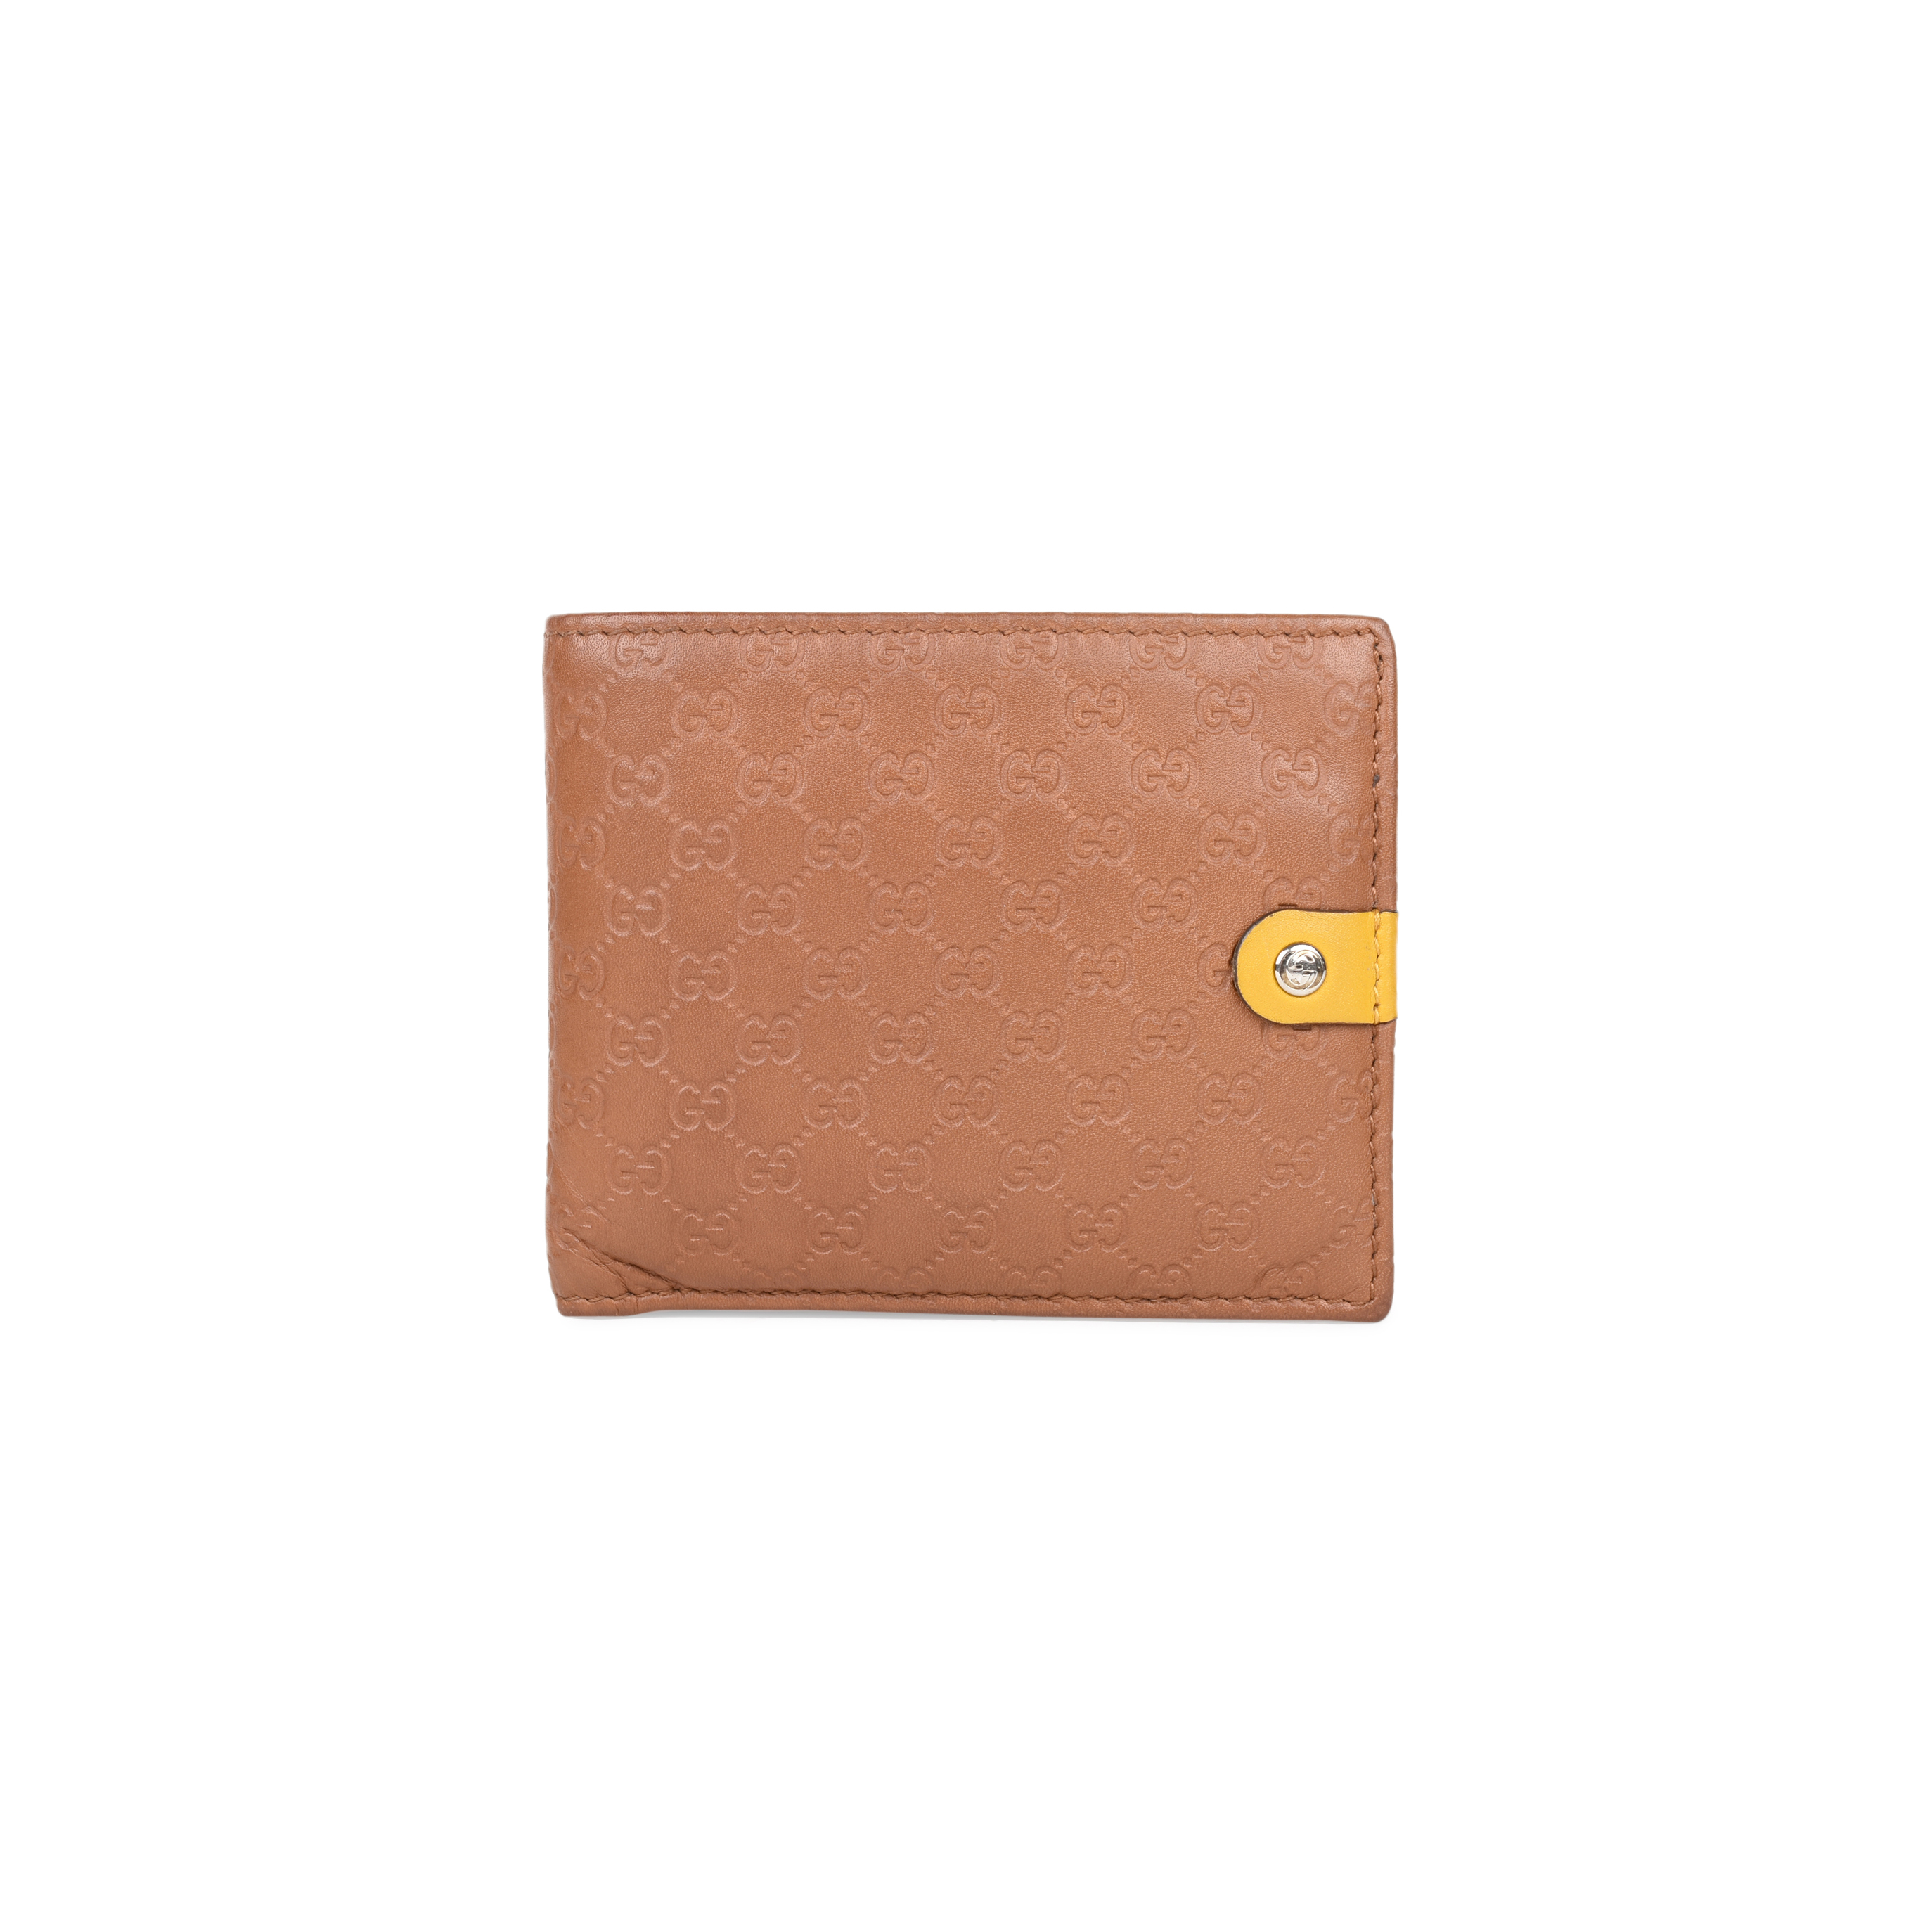 20148ce772ea Authentic Second Hand Gucci Microguccissima Leather Wallet (PSS-394-00023)  | THE FIFTH COLLECTION